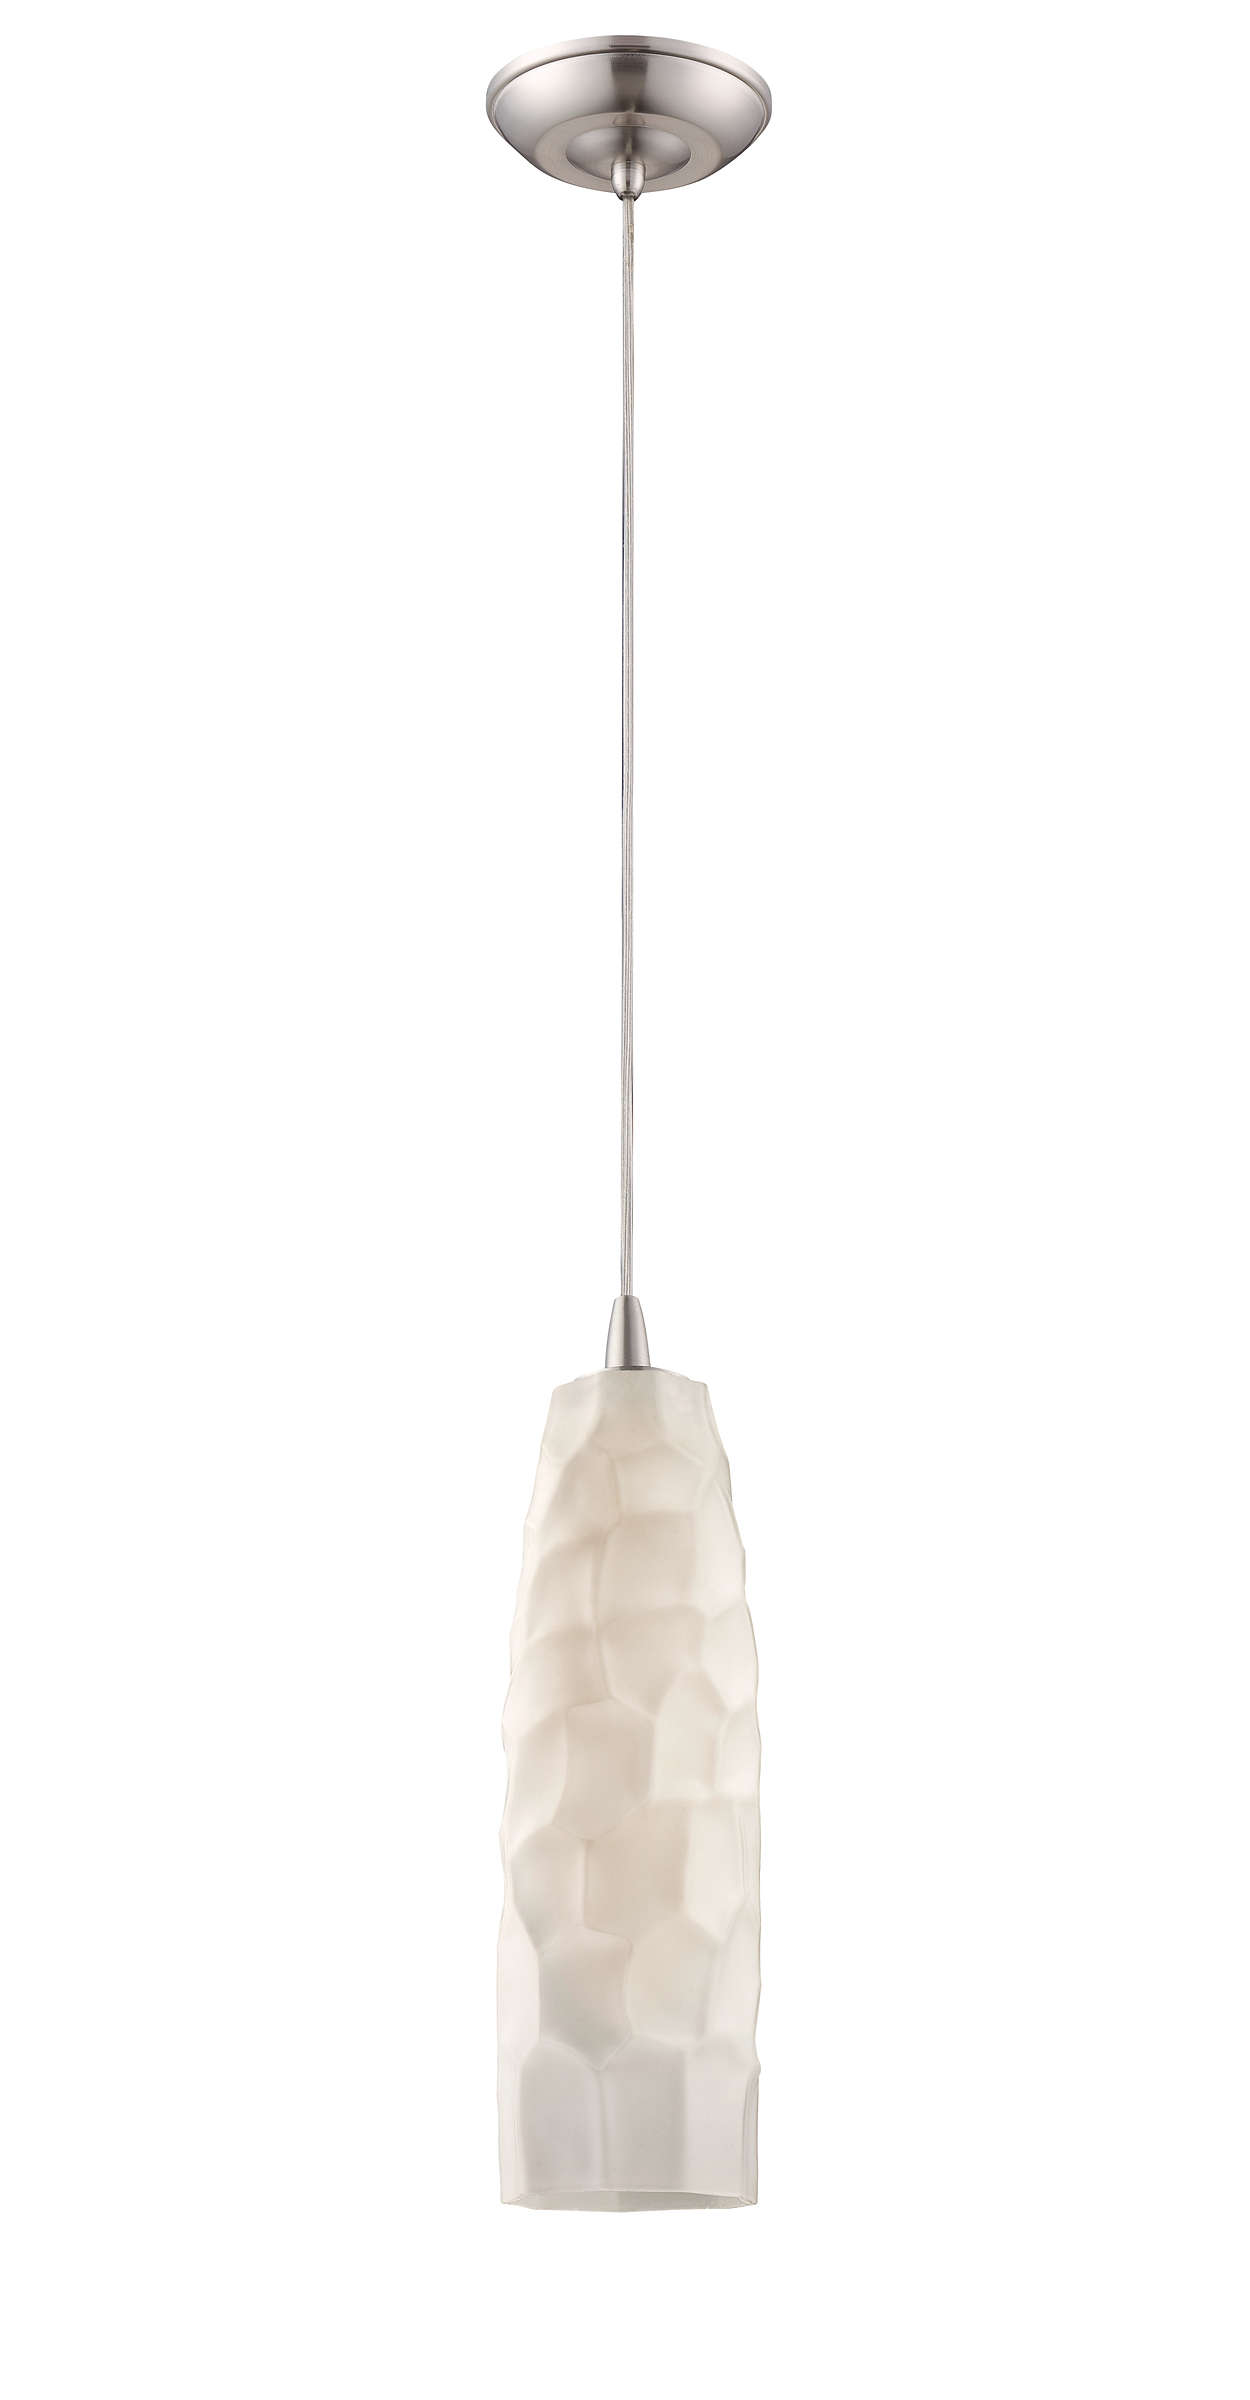 Graphite 1-light pendant in Satin Nickel finish